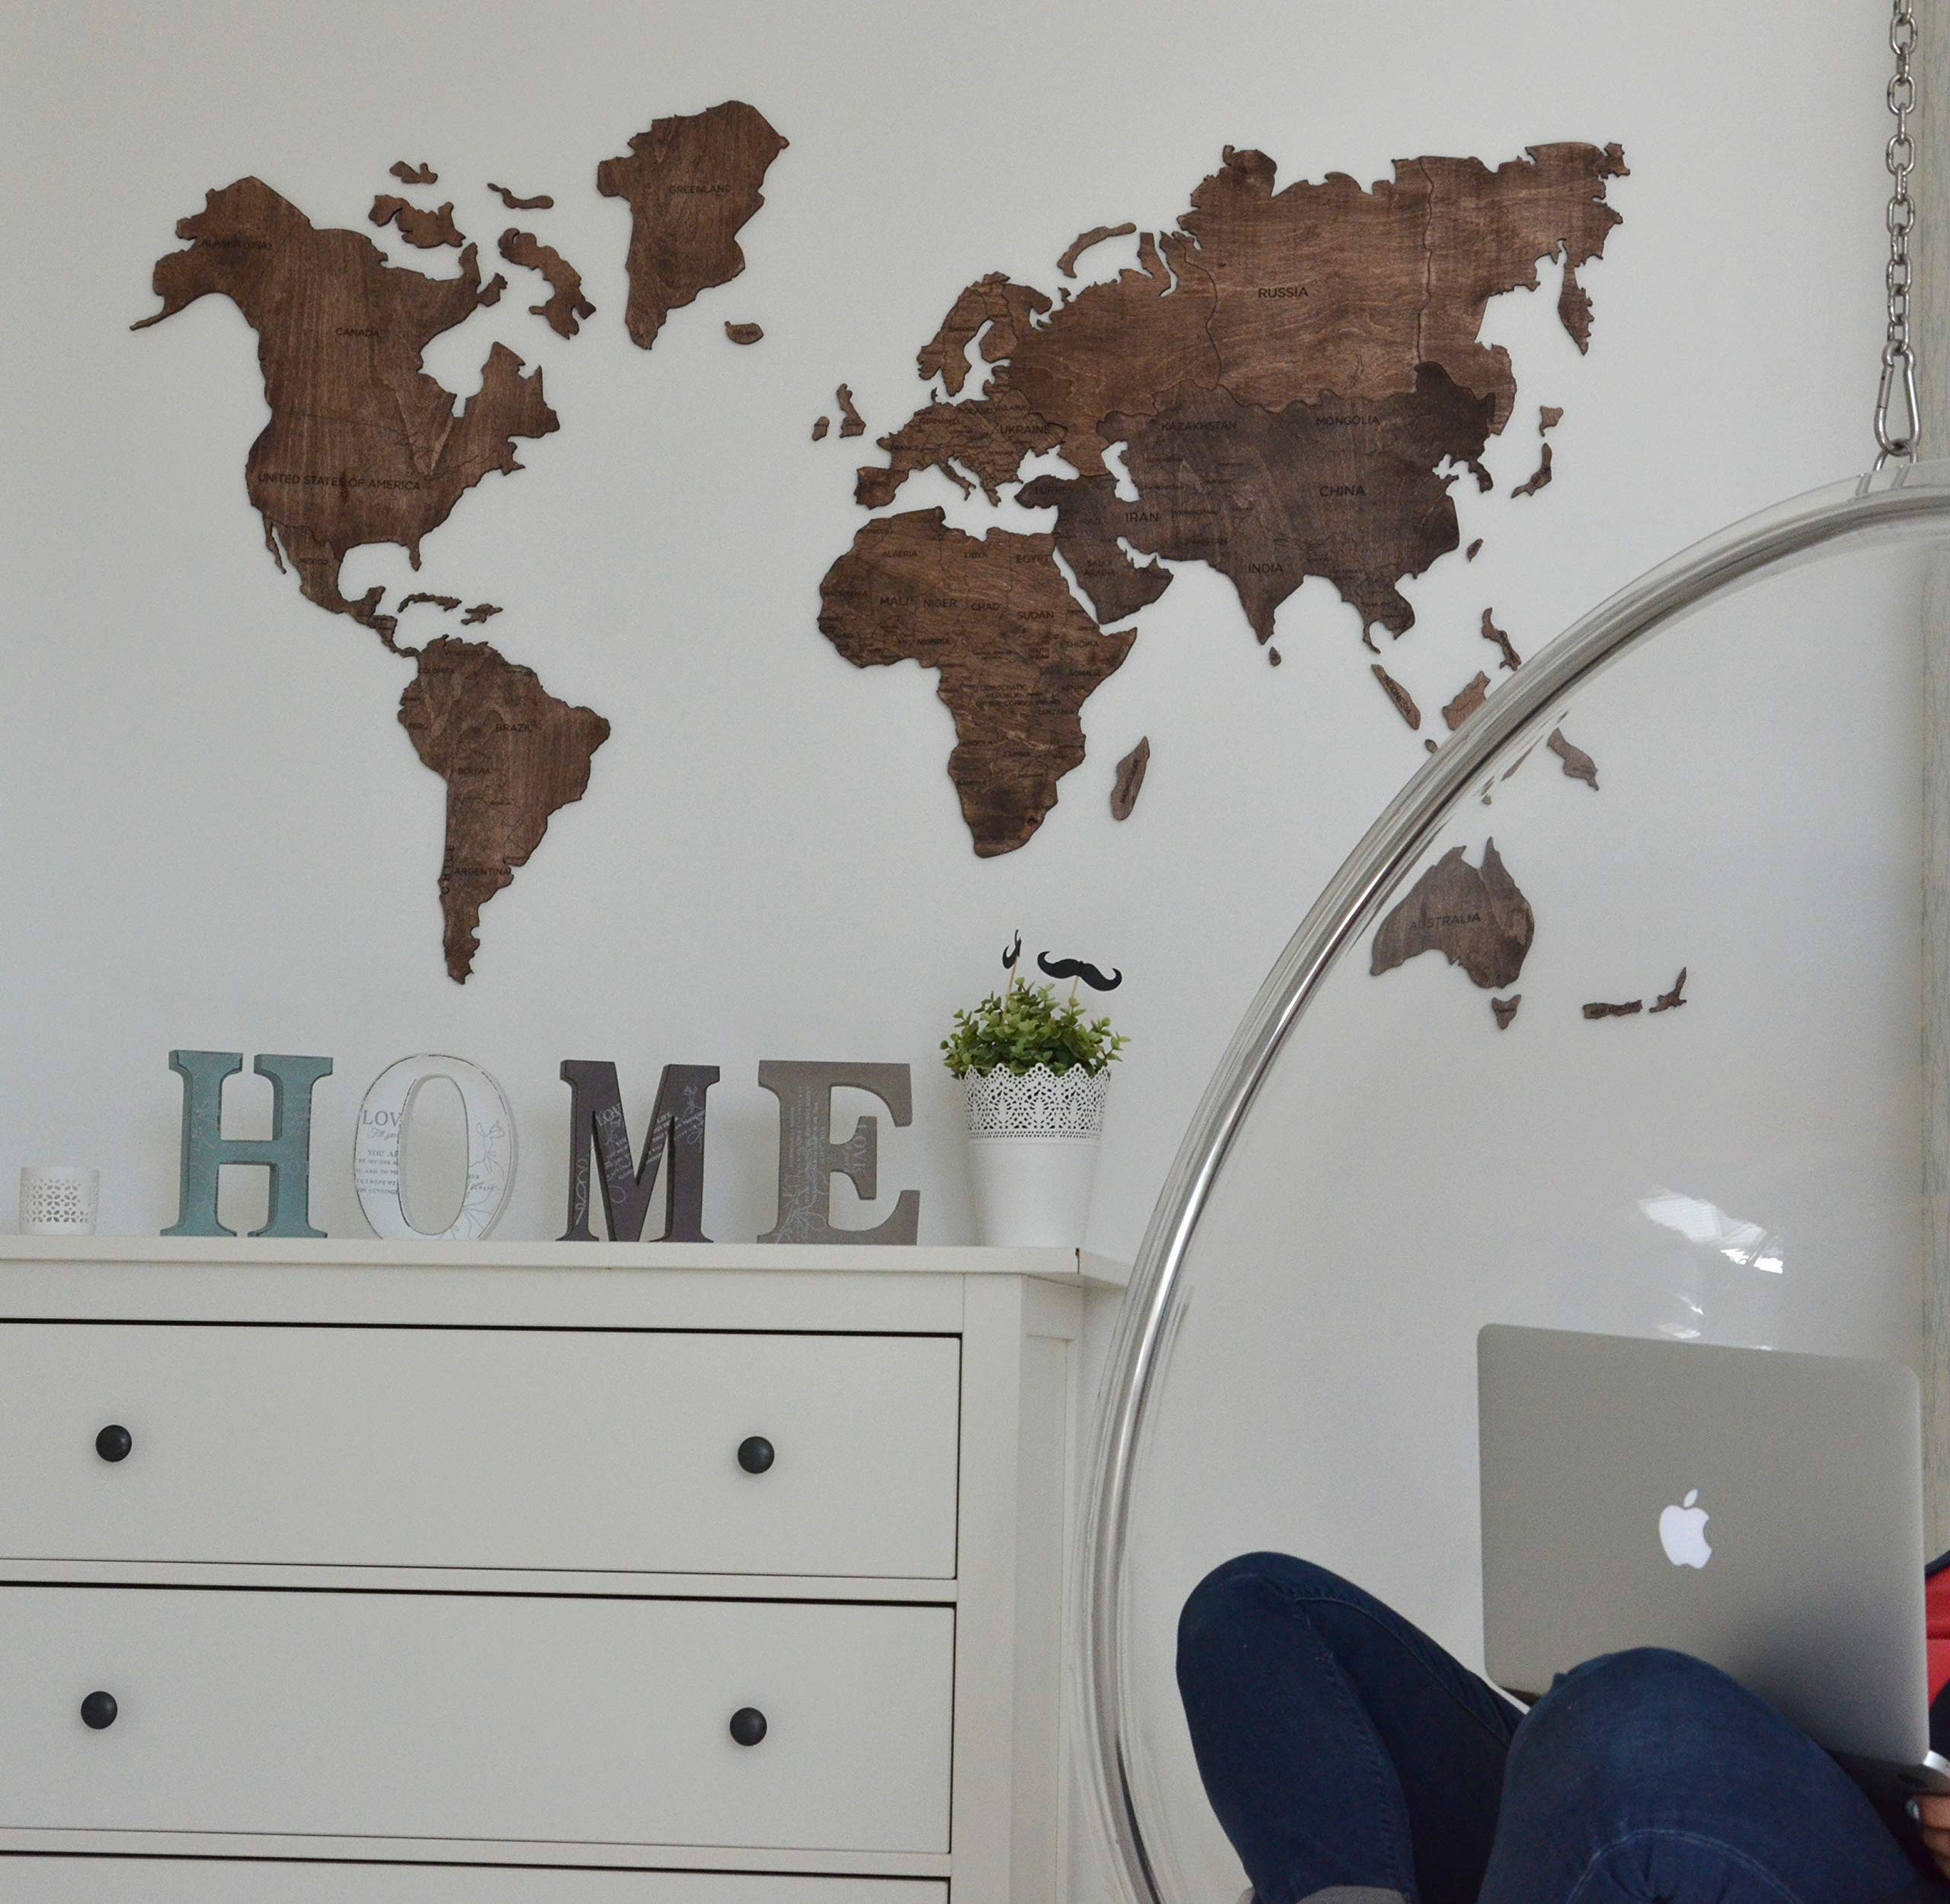 Large World Map of the World Travel map Wall world Cork Rustic Home decor Office decor Wall decor Dorm Living room Interior design Fathers Day Gift - By Enjoy The Wood 100x50cm, 150x90cm, 200x102cm by Enjoy The Wood (Image #3)